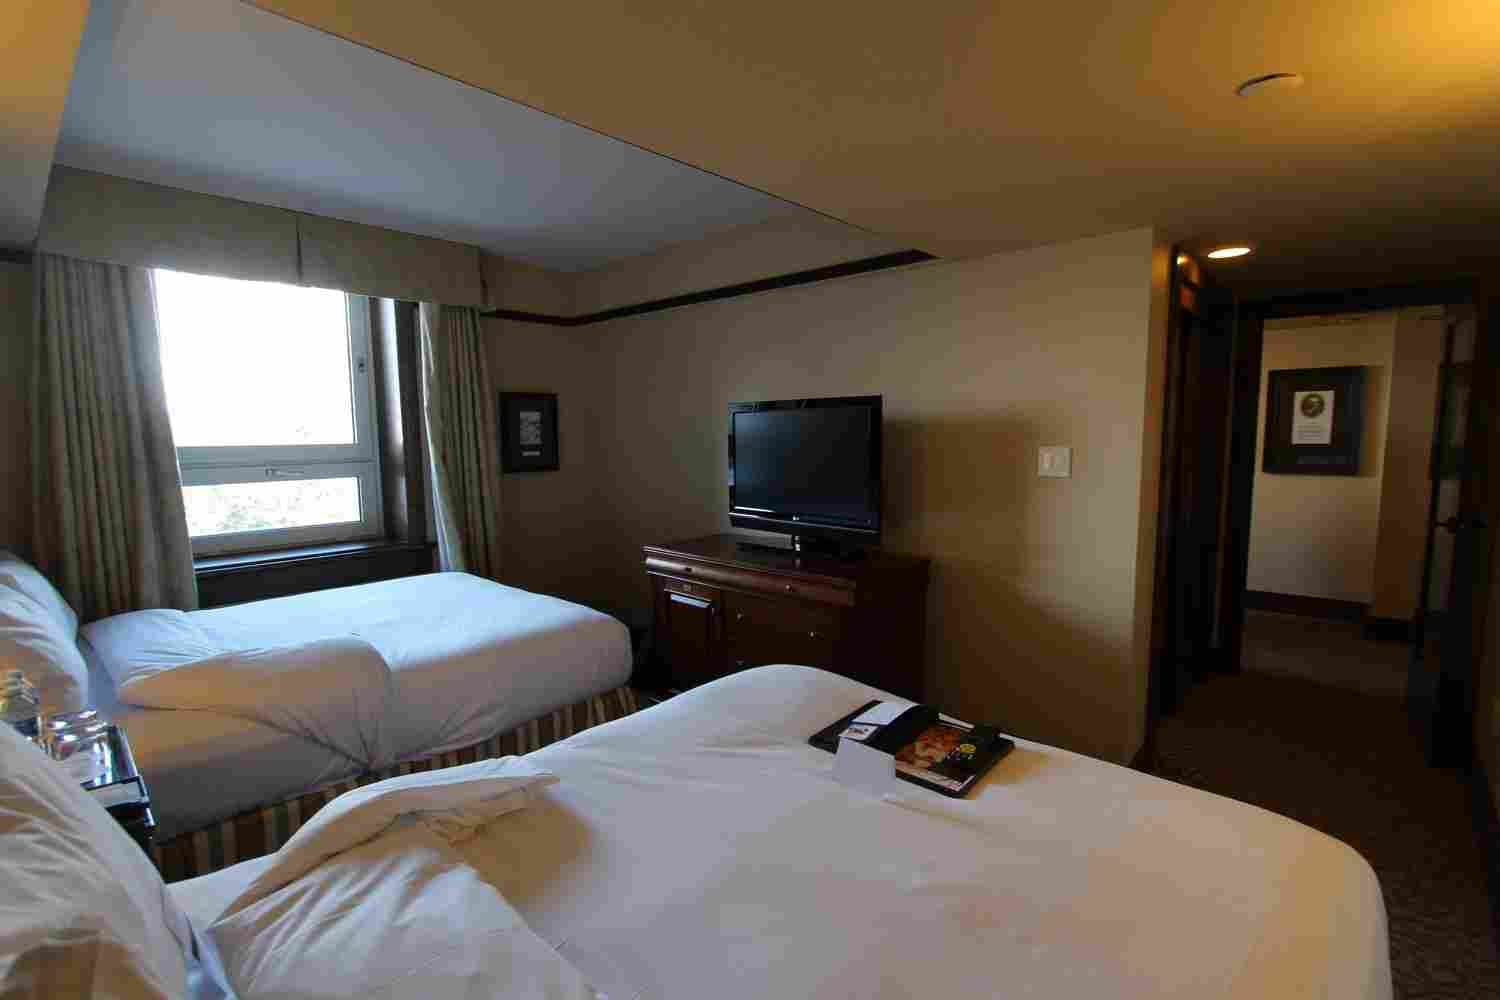 http://winter2.hotel-sites.bookoncloud.com/wp-content/uploads/sites/76/2016/02/interior_01.jpg